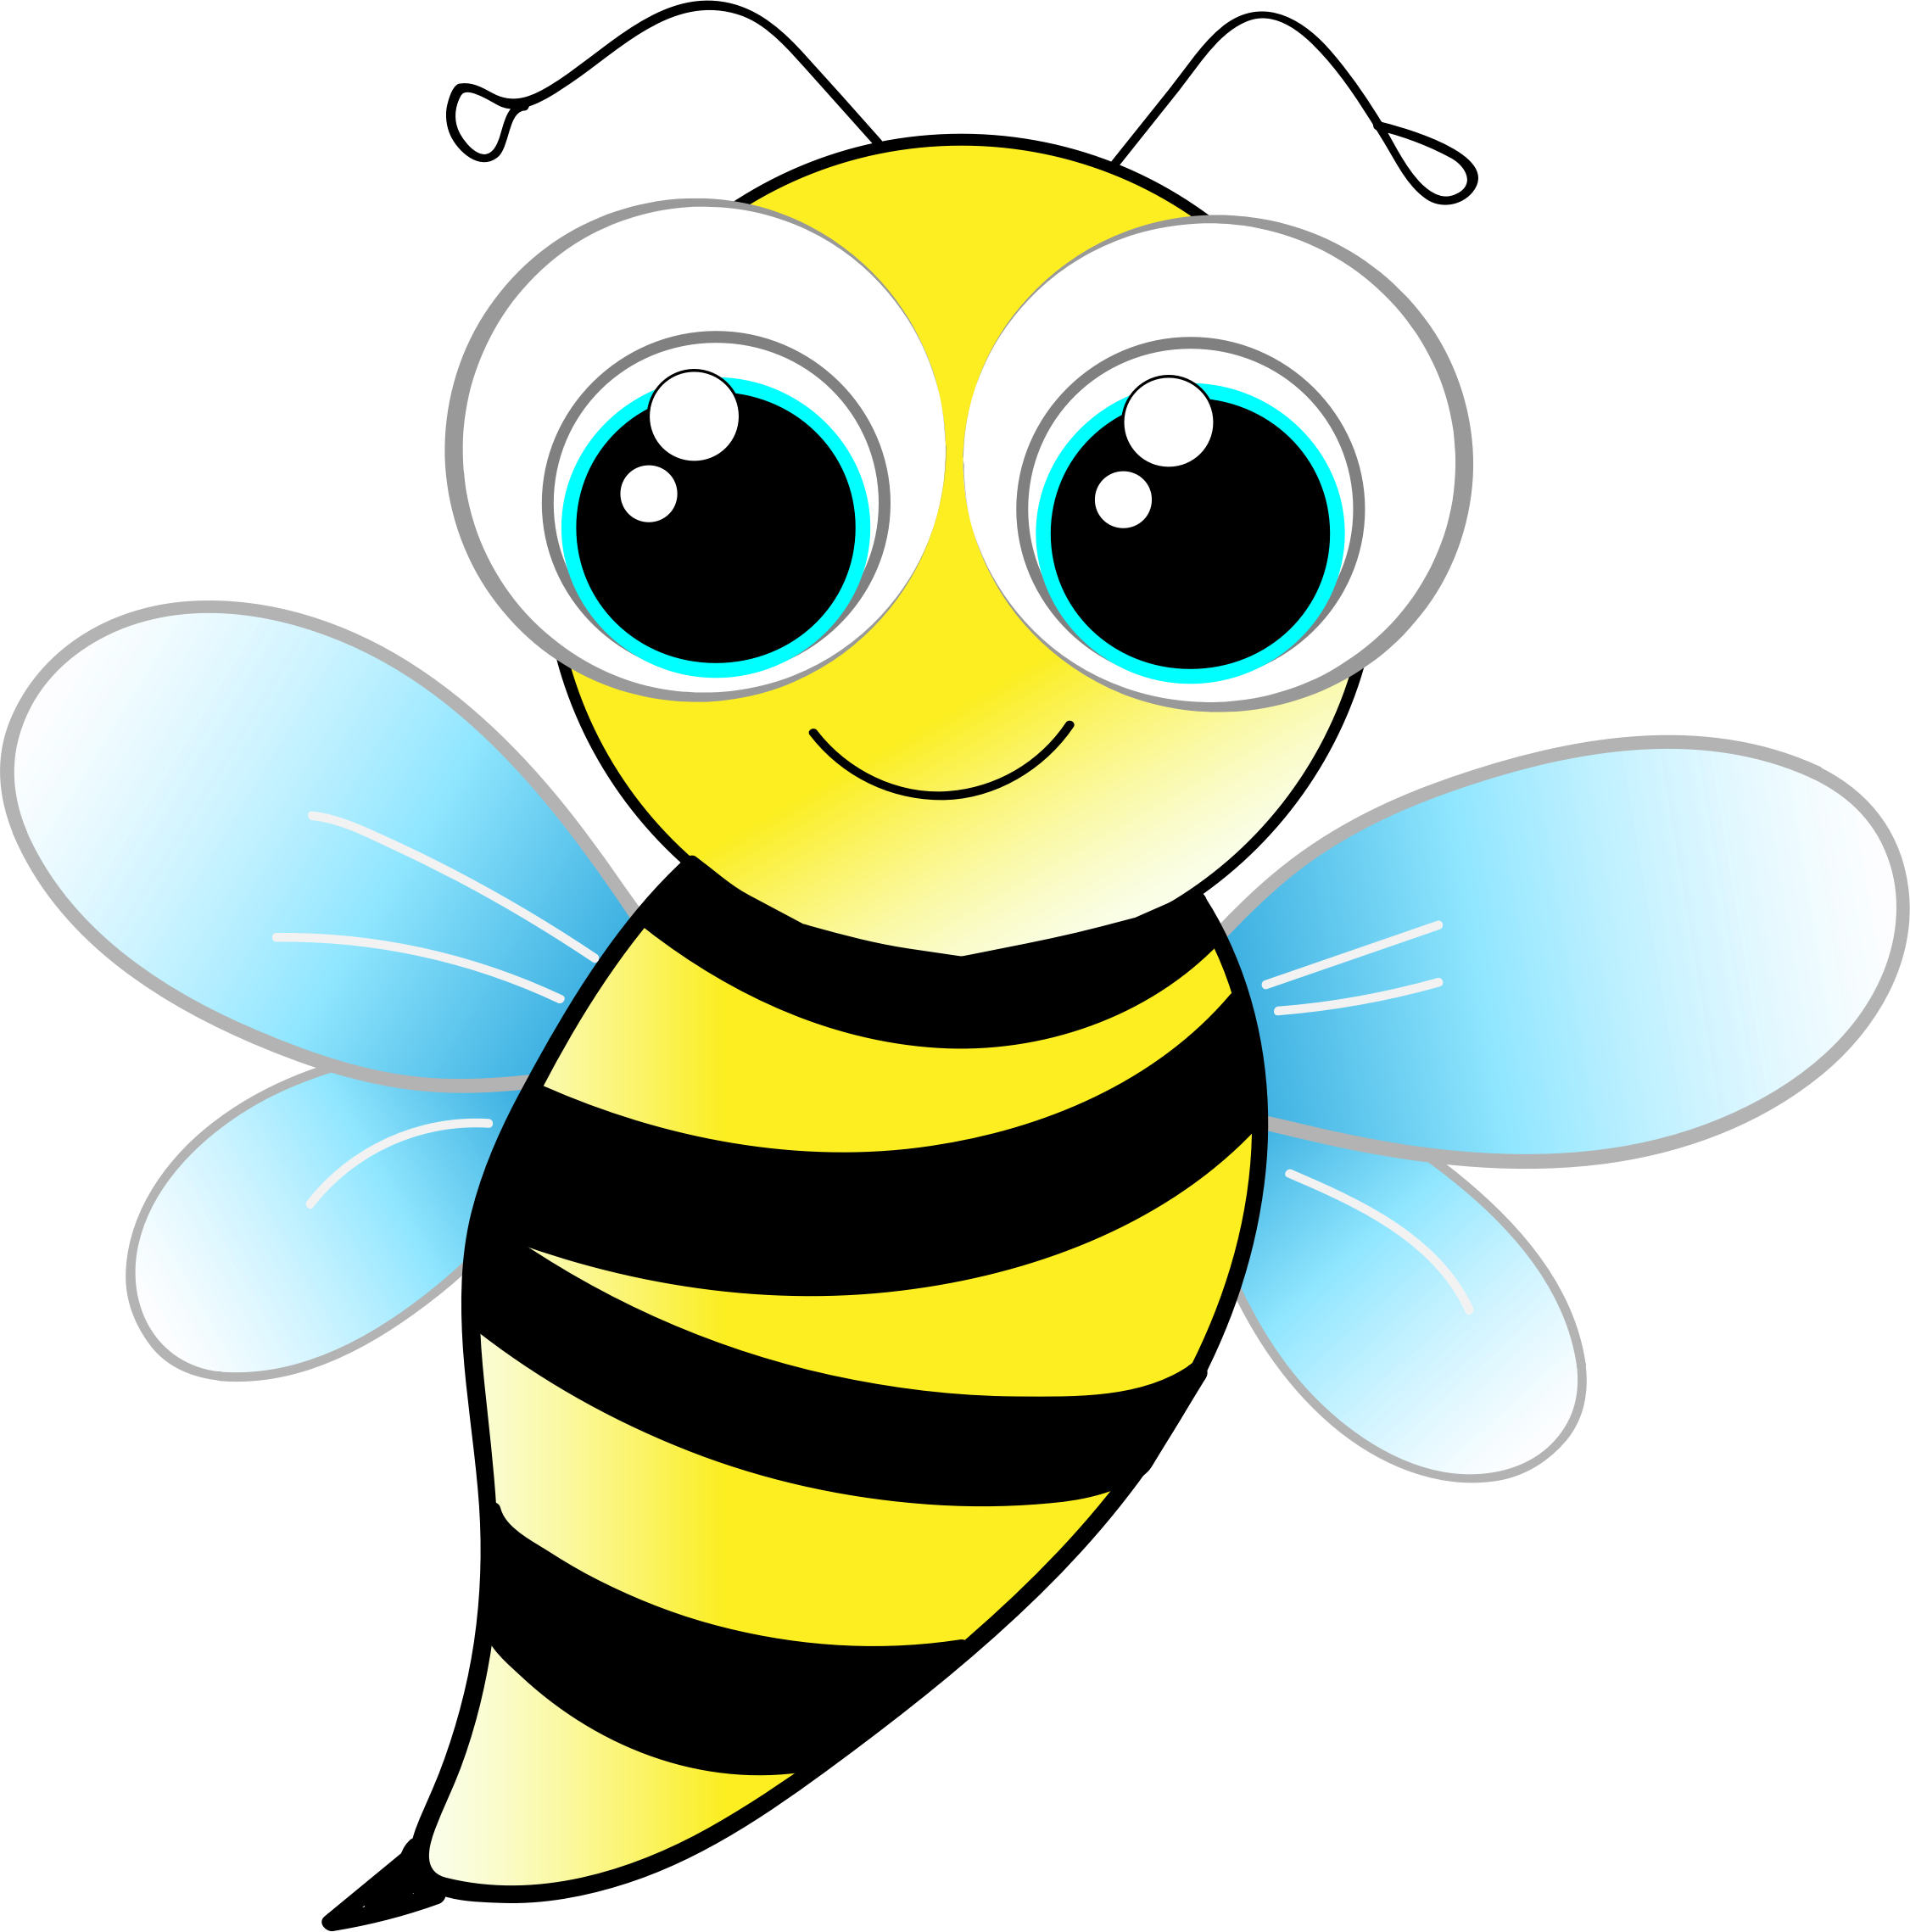 friendly bee by  gdj  from pixabay   on  openclipart the honey clipart with transparent background honey clipart black and white